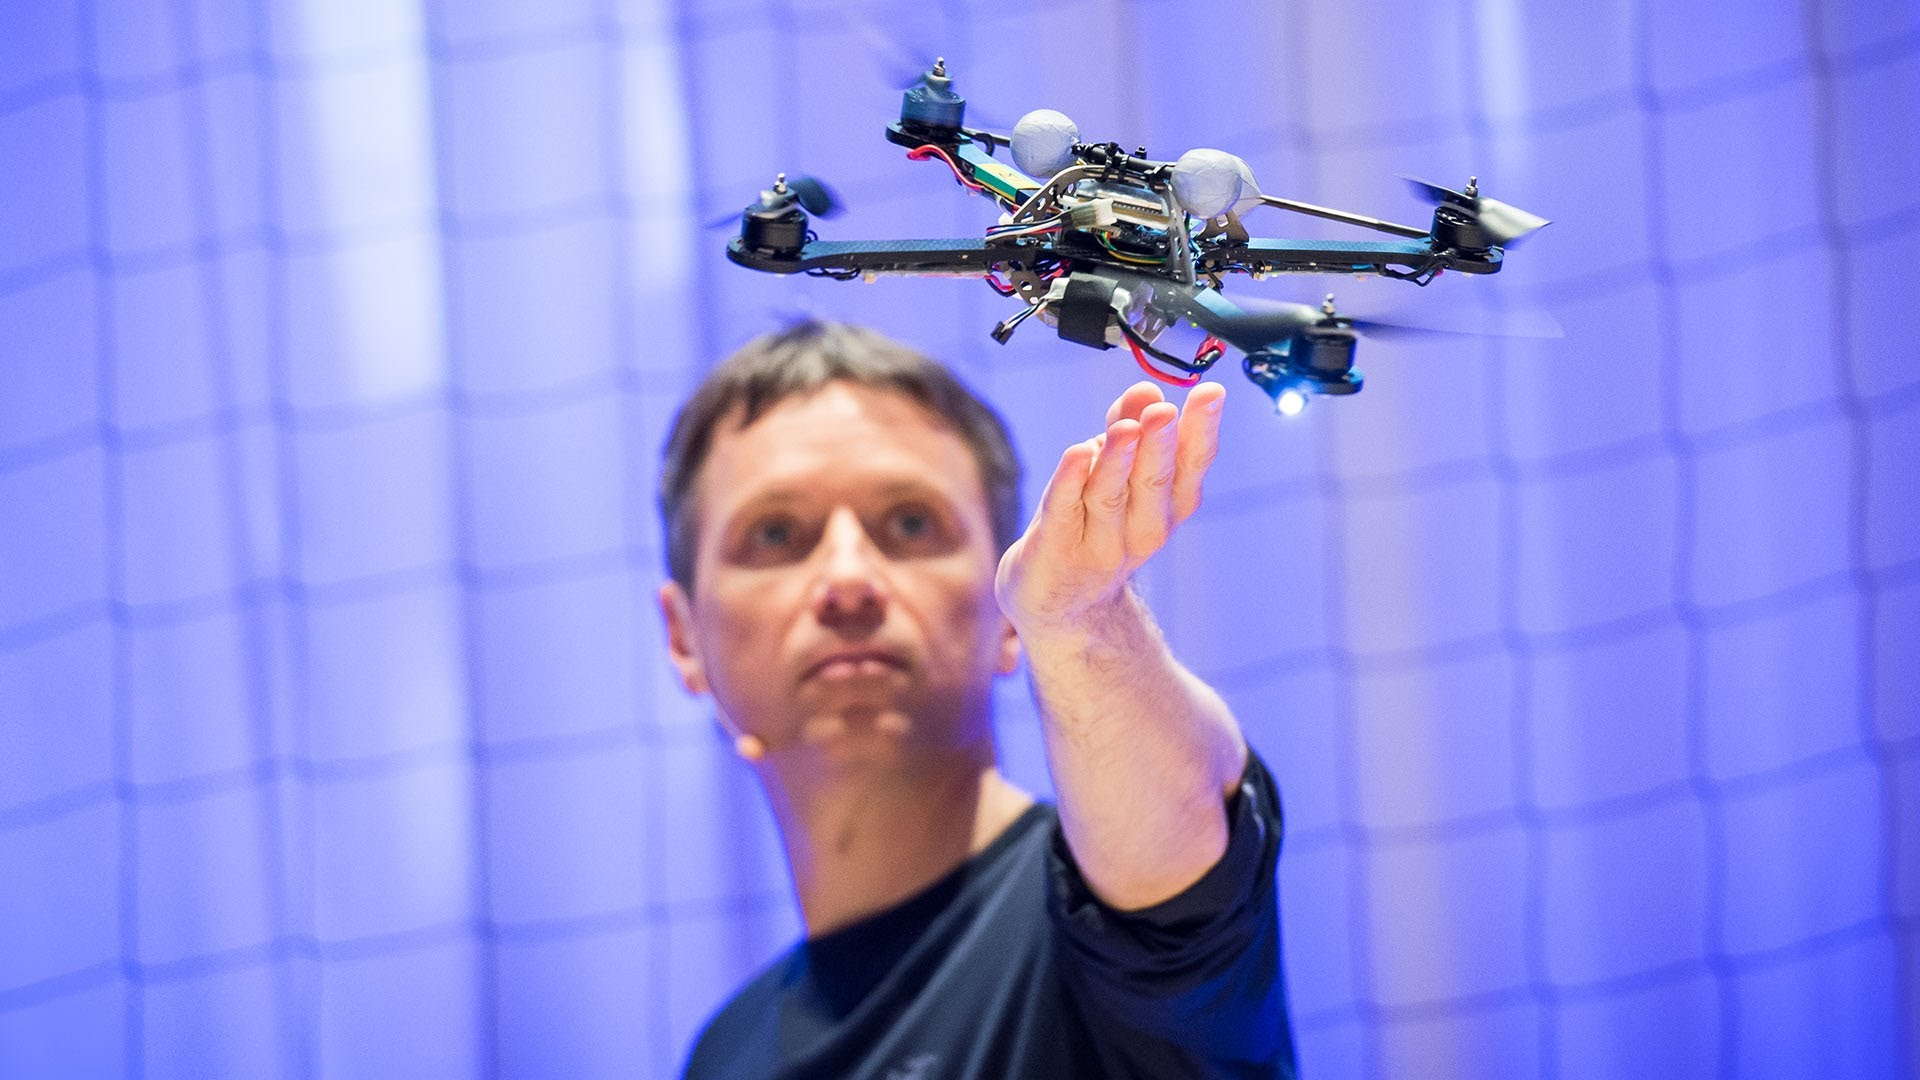 The athletic power of quadcopters